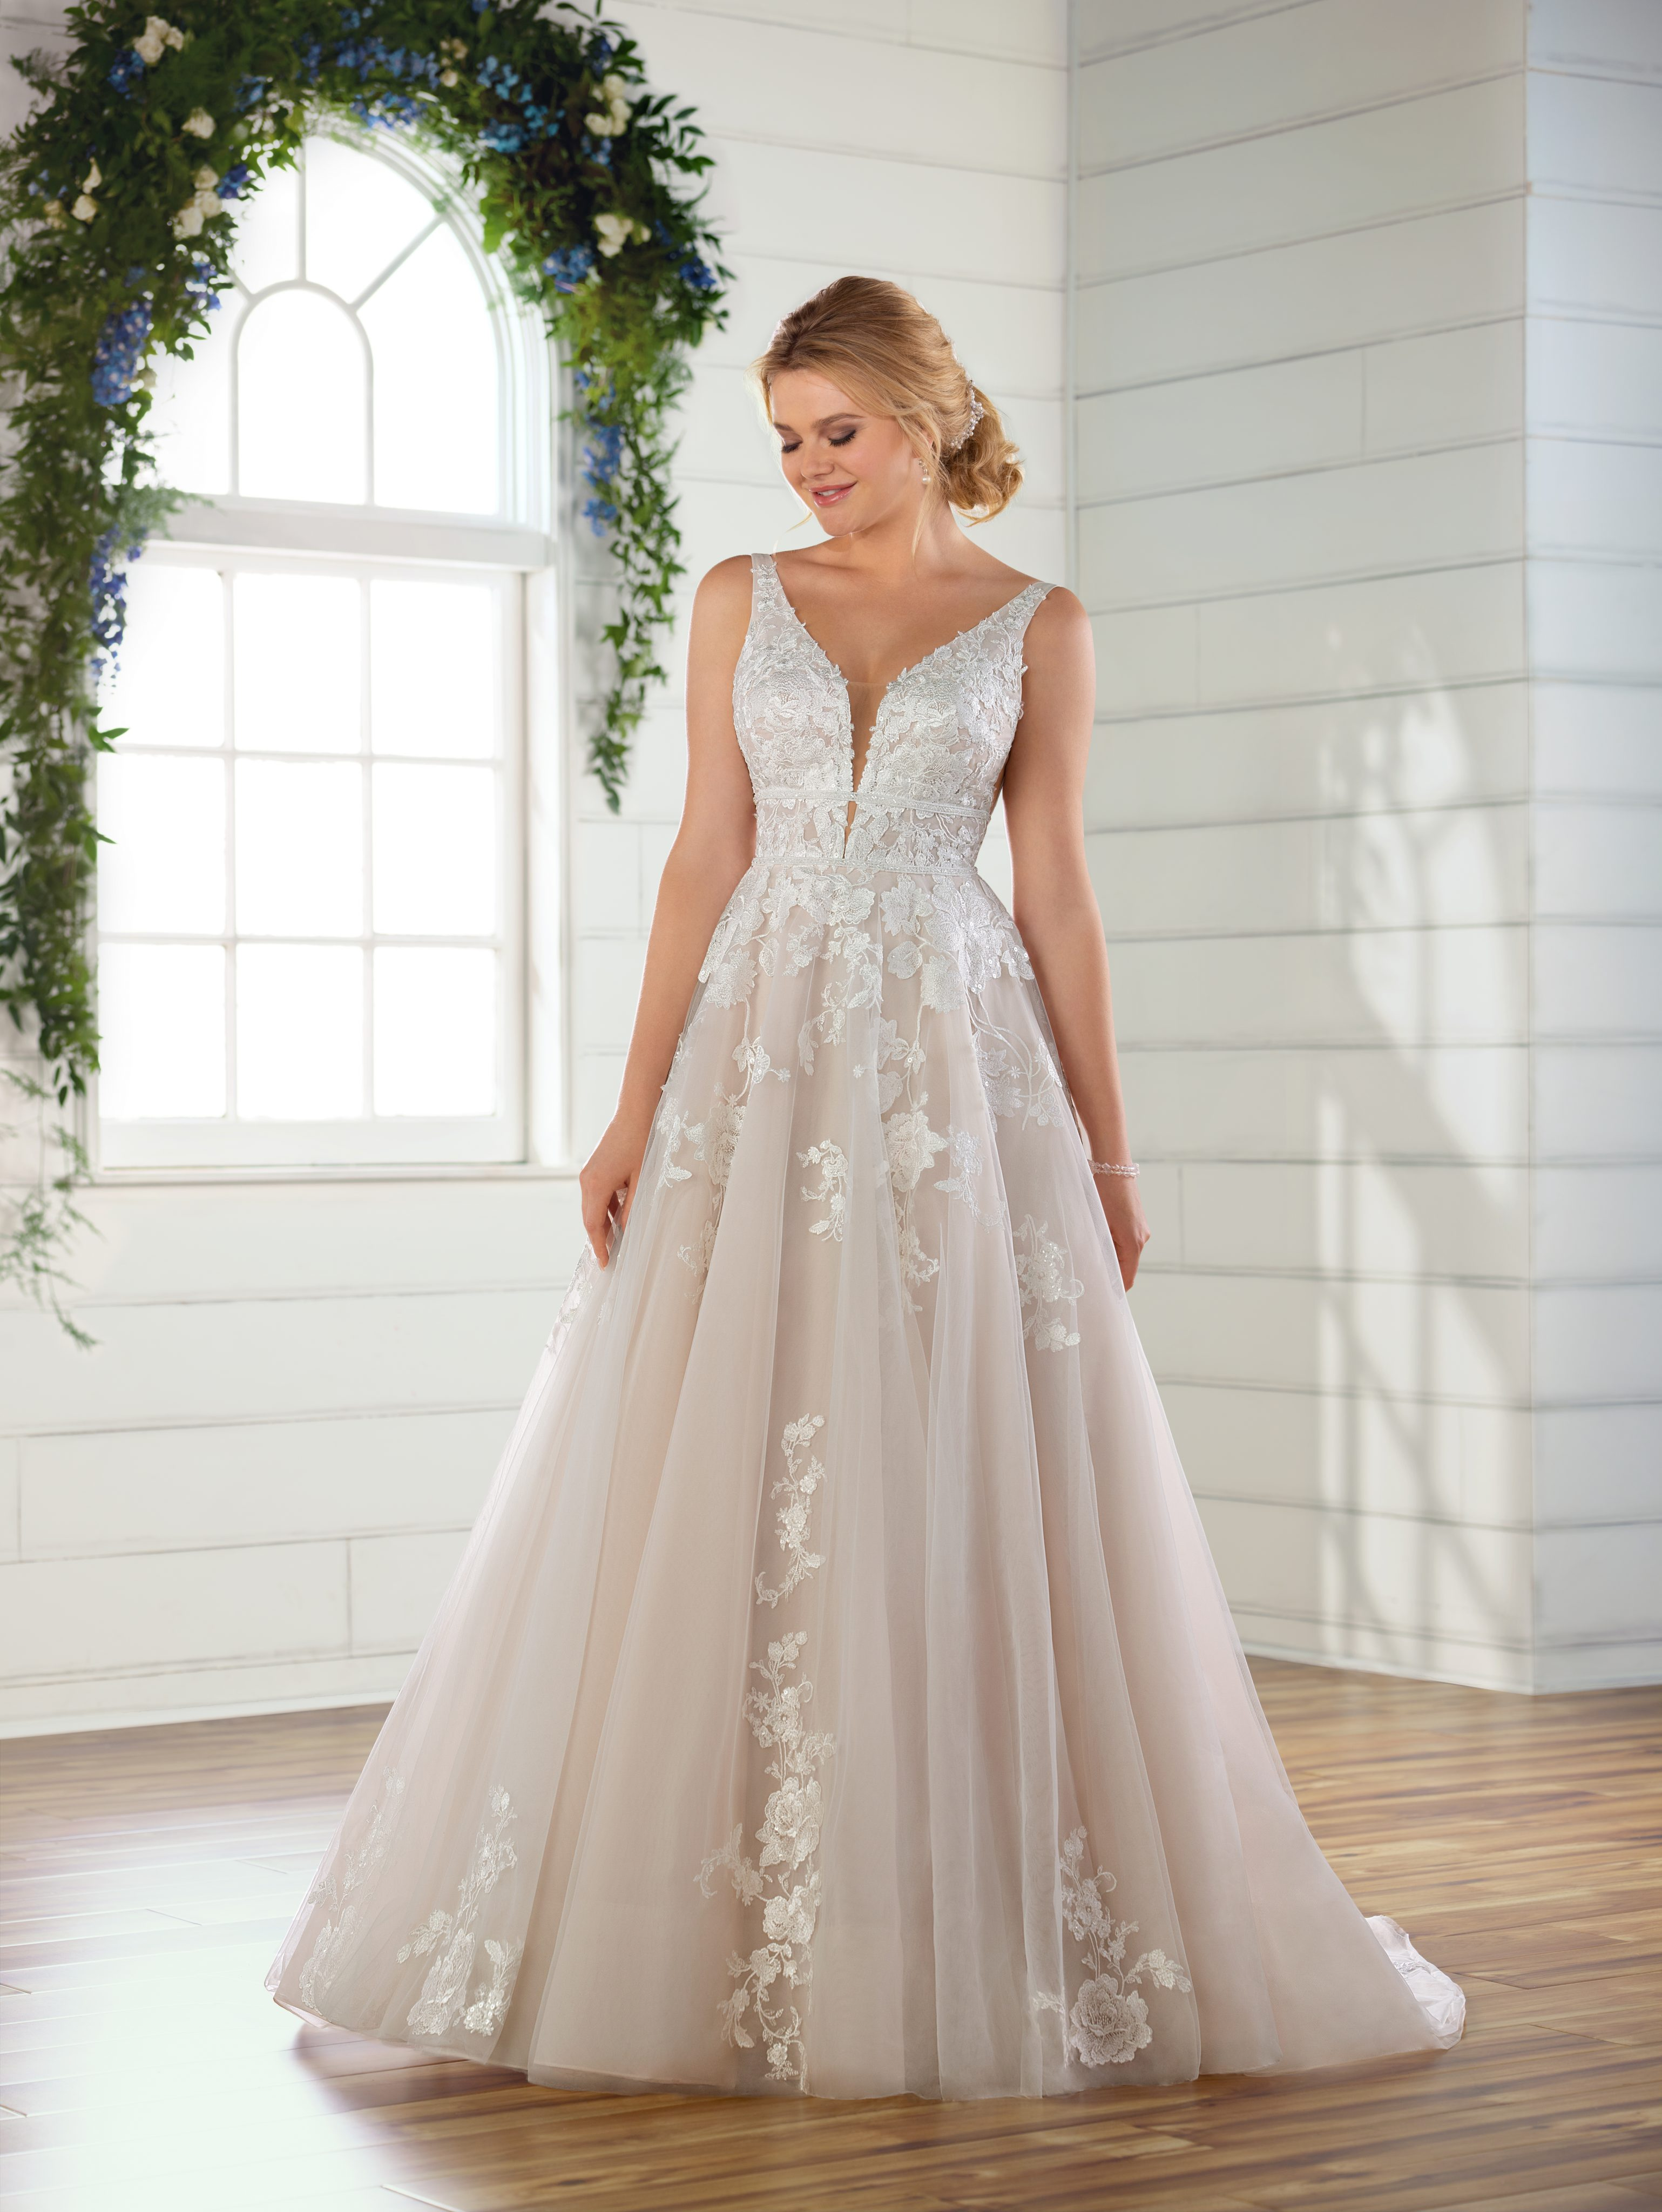 Sleeveless V Neck Floral Lace Embroidered A Line Wedding